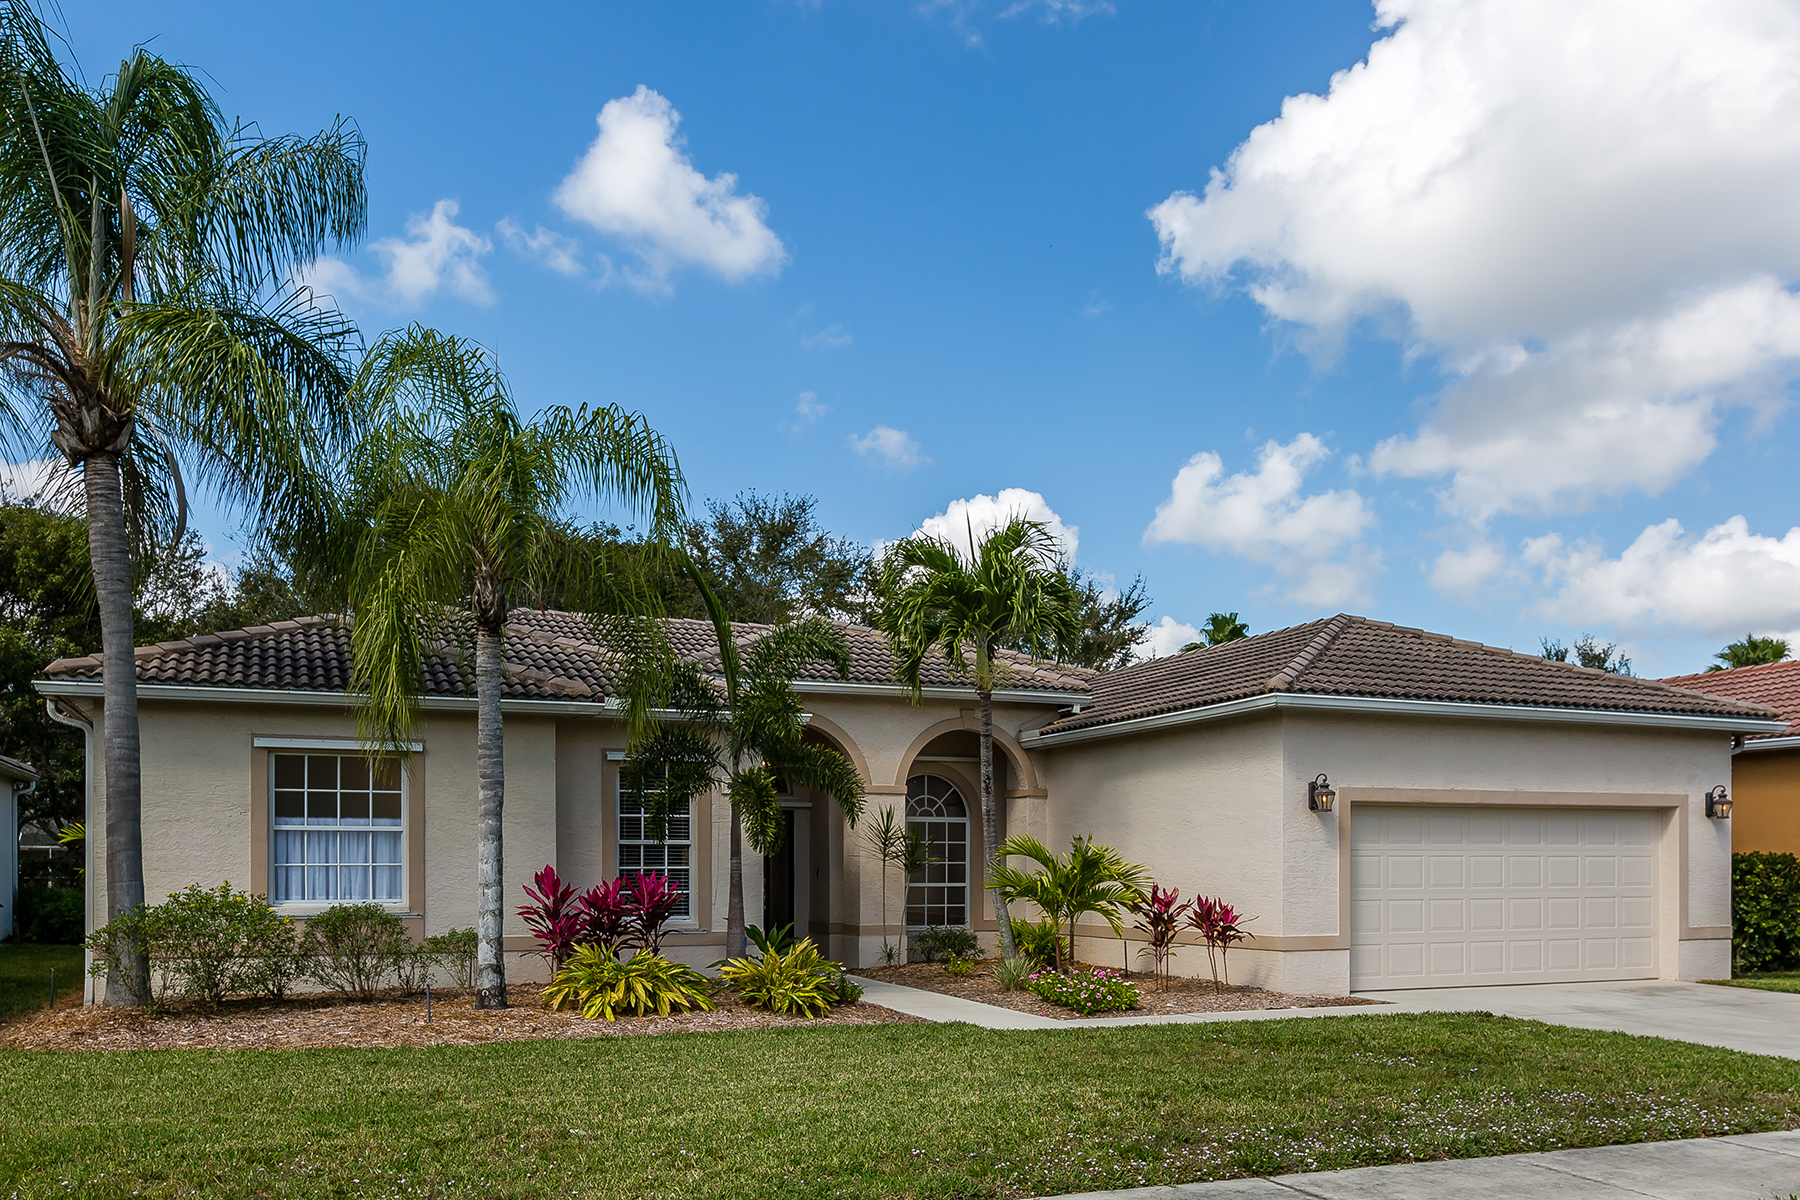 Single Family Home for Sale at LAUREL LAKES 8508 Laurel Lakes Blvd Naples, Florida, 34119 United States